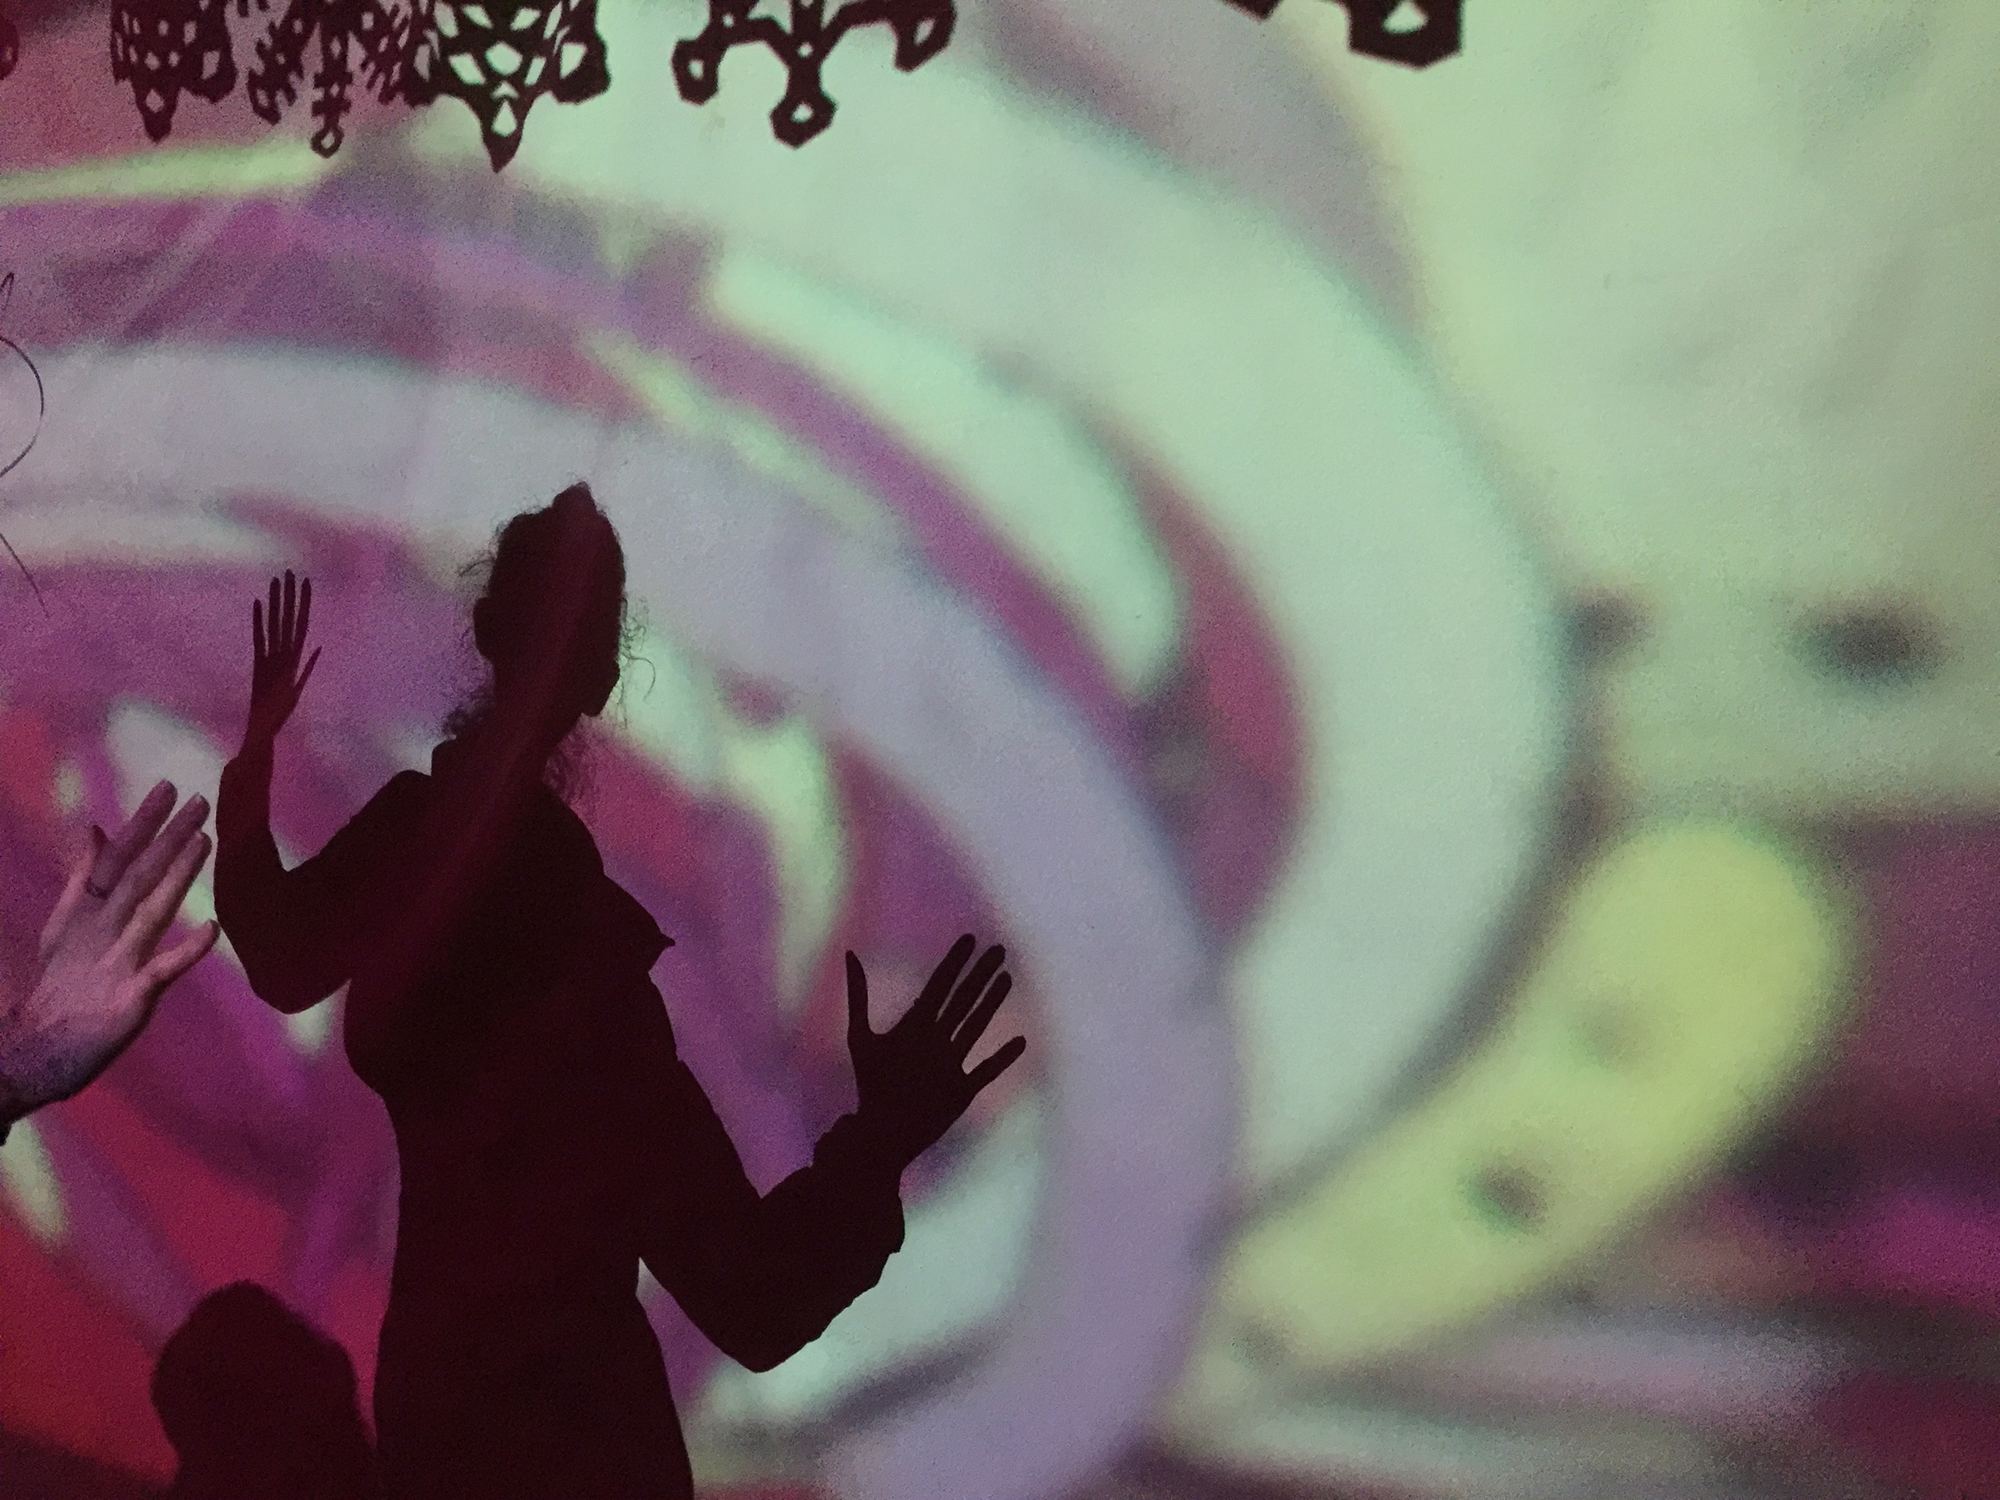 Geena Matuson (@geenamatuson) against a psychedelic backdrop at Tel-Aviv's club  Pasáž (Passage)  with Jessica Harshman.